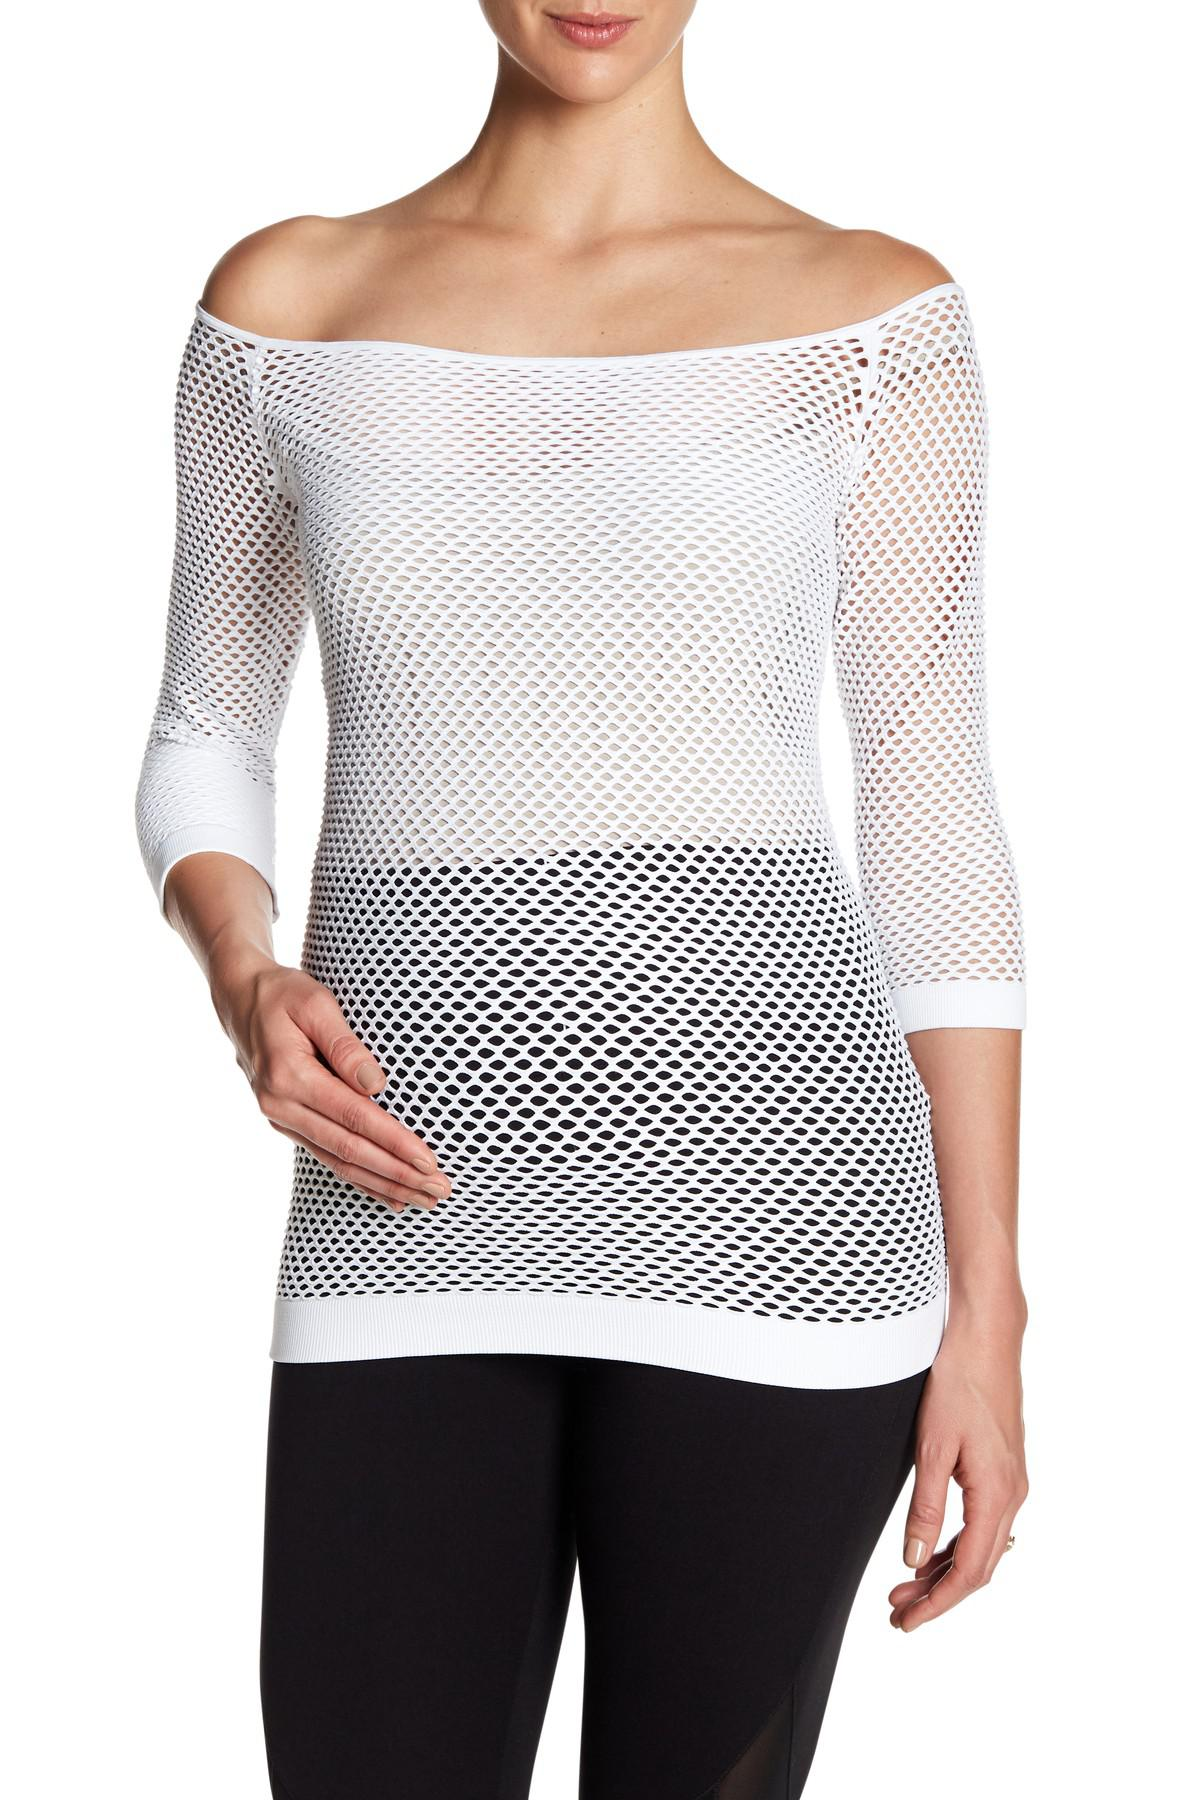 8af2106428 Electric Yoga Peekaboo Belly Off-the-shoulder Fishnet Top (maternity ...